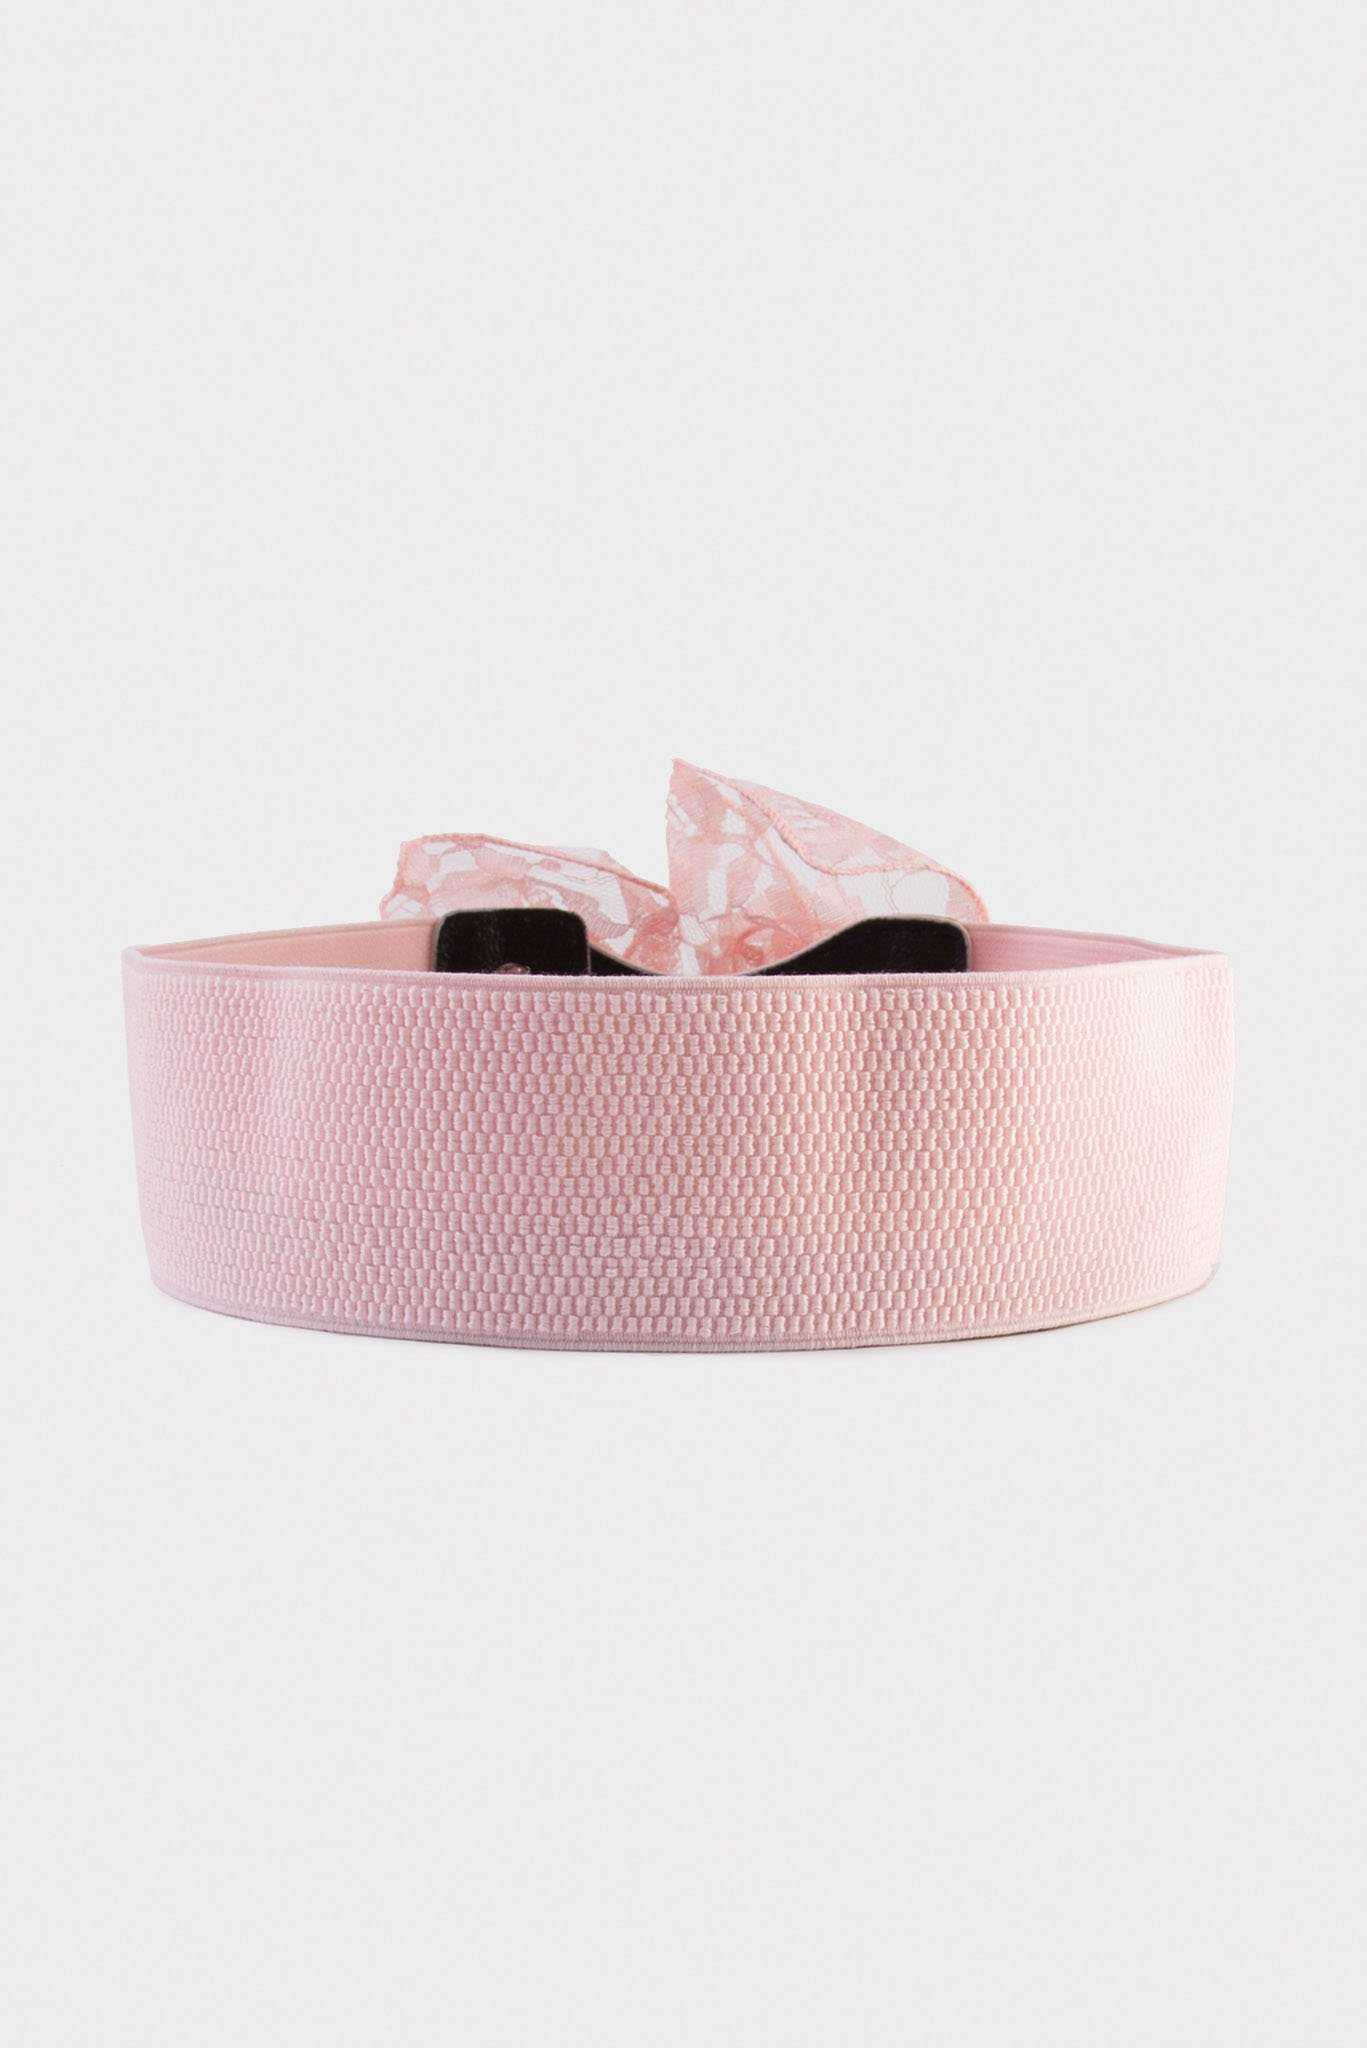 Bow Belt - Pink | Raw Orange